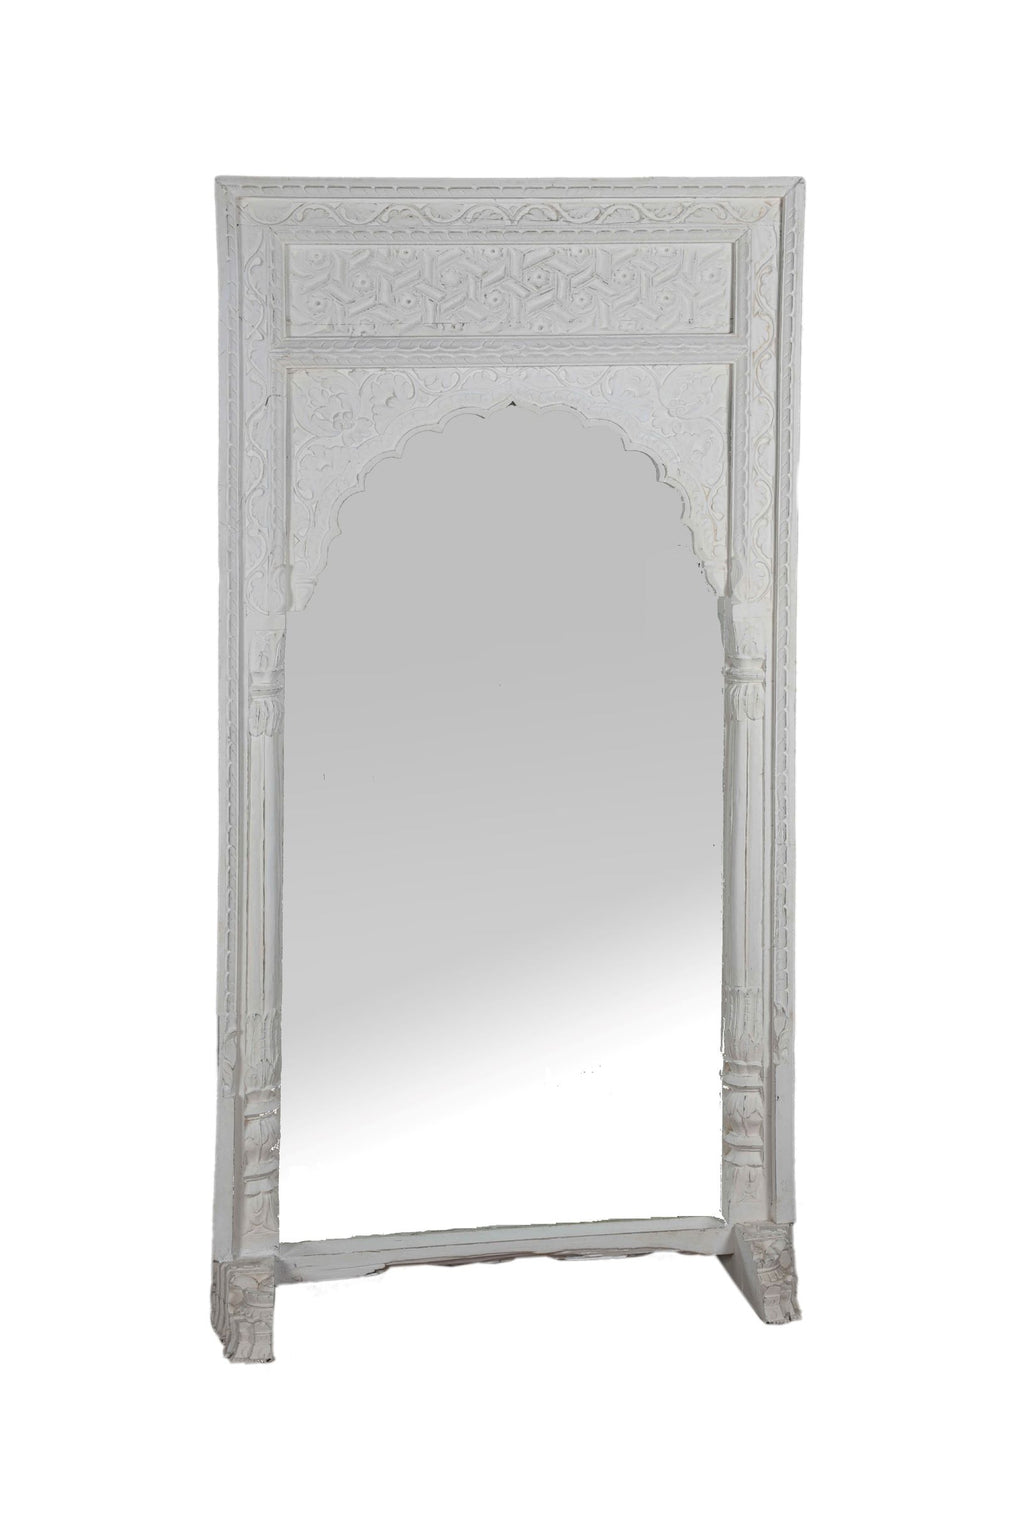 Mirror- Freestanding